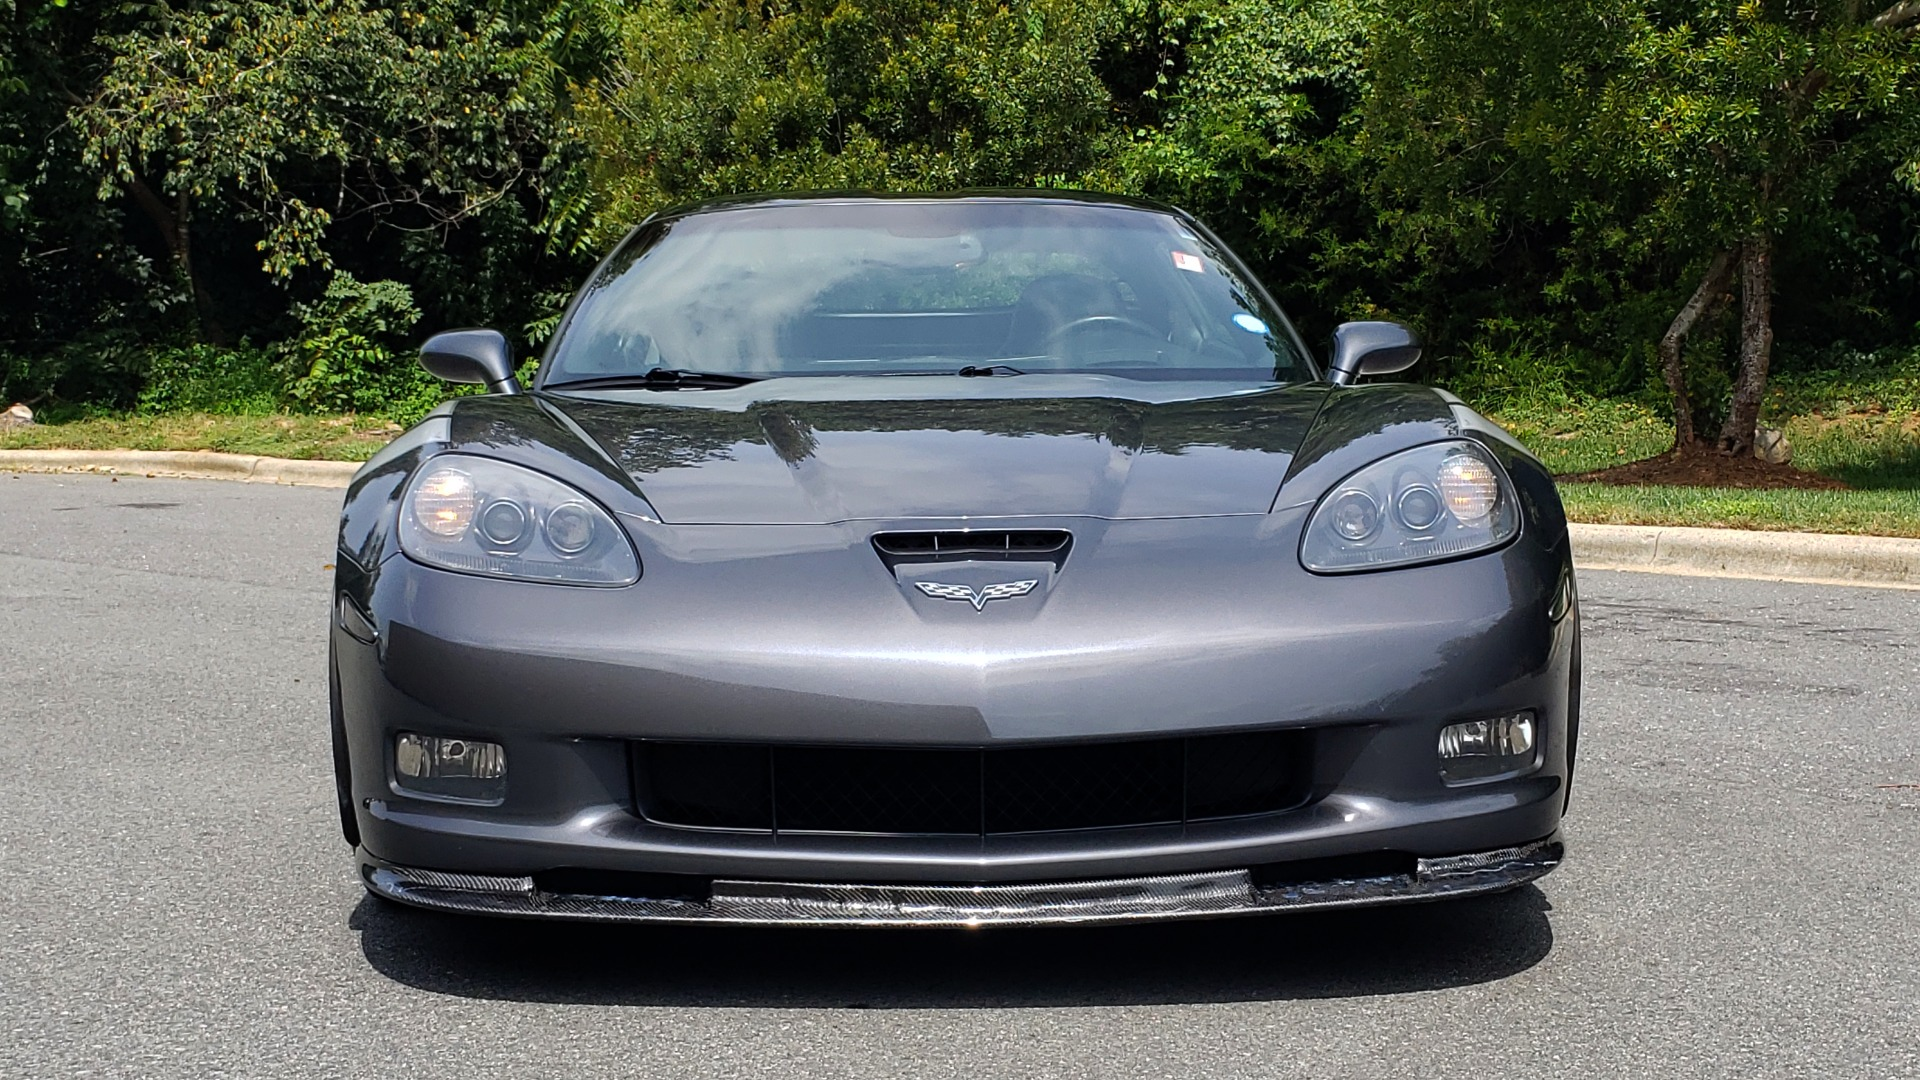 Used 2010 Chevrolet CORVETTE Z16 GRAND SPORT 3LT / HUD / 6.2L V8 / 6-SPD AUTO / NPP EXH for sale Sold at Formula Imports in Charlotte NC 28227 28